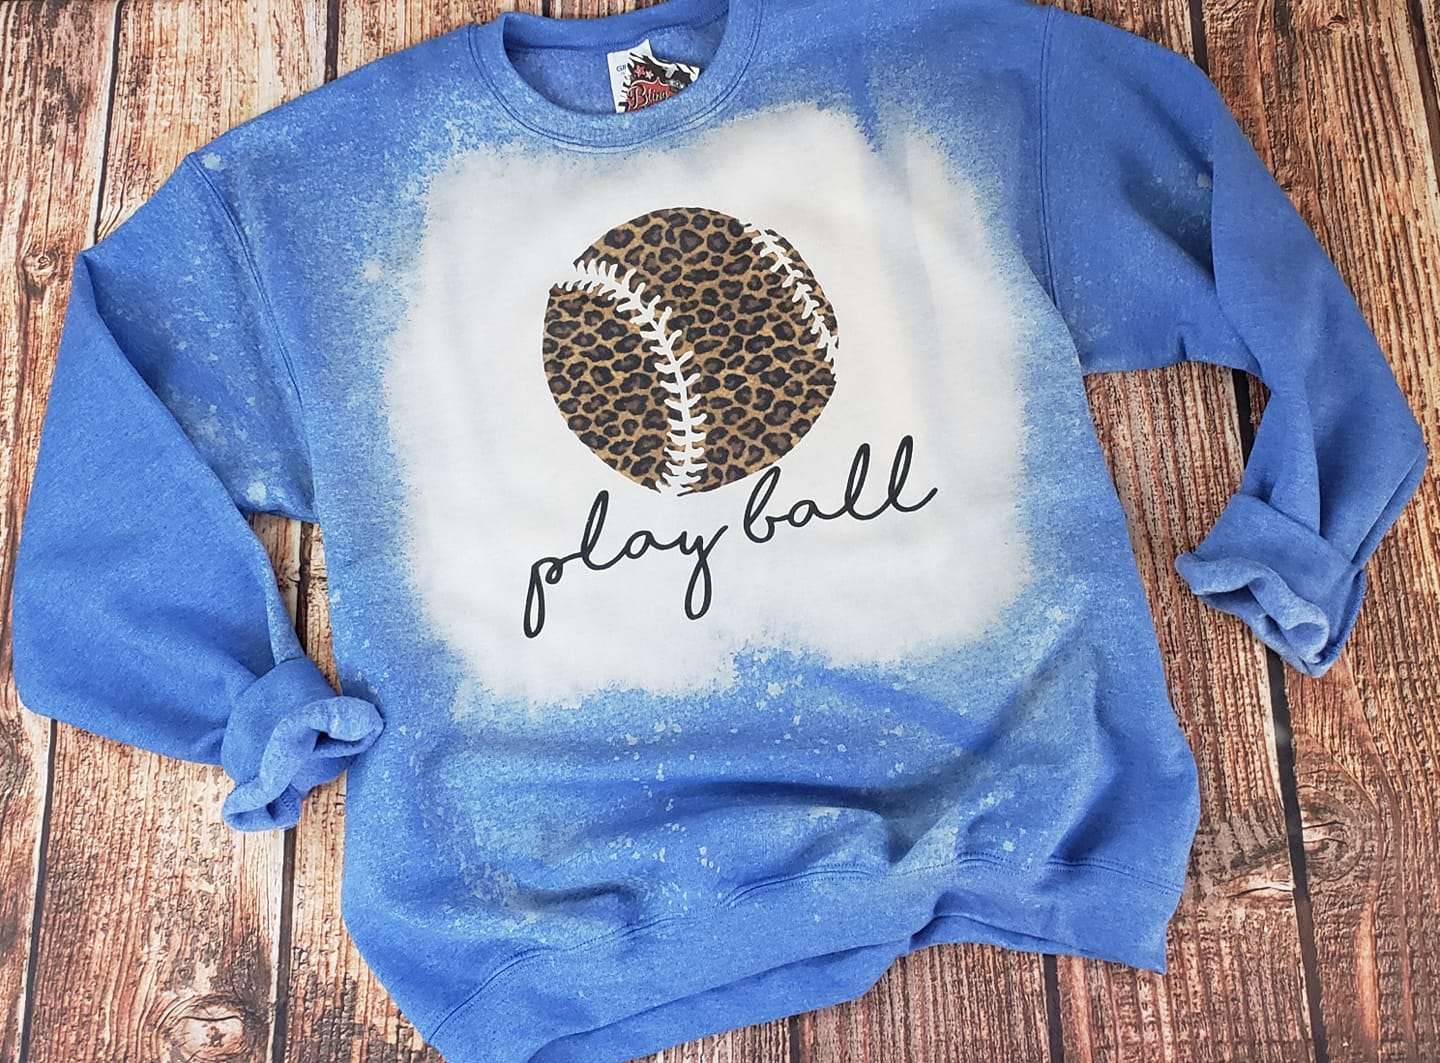 BLEACHED FLEECE; PLAY BALL & OTHER SPORTS